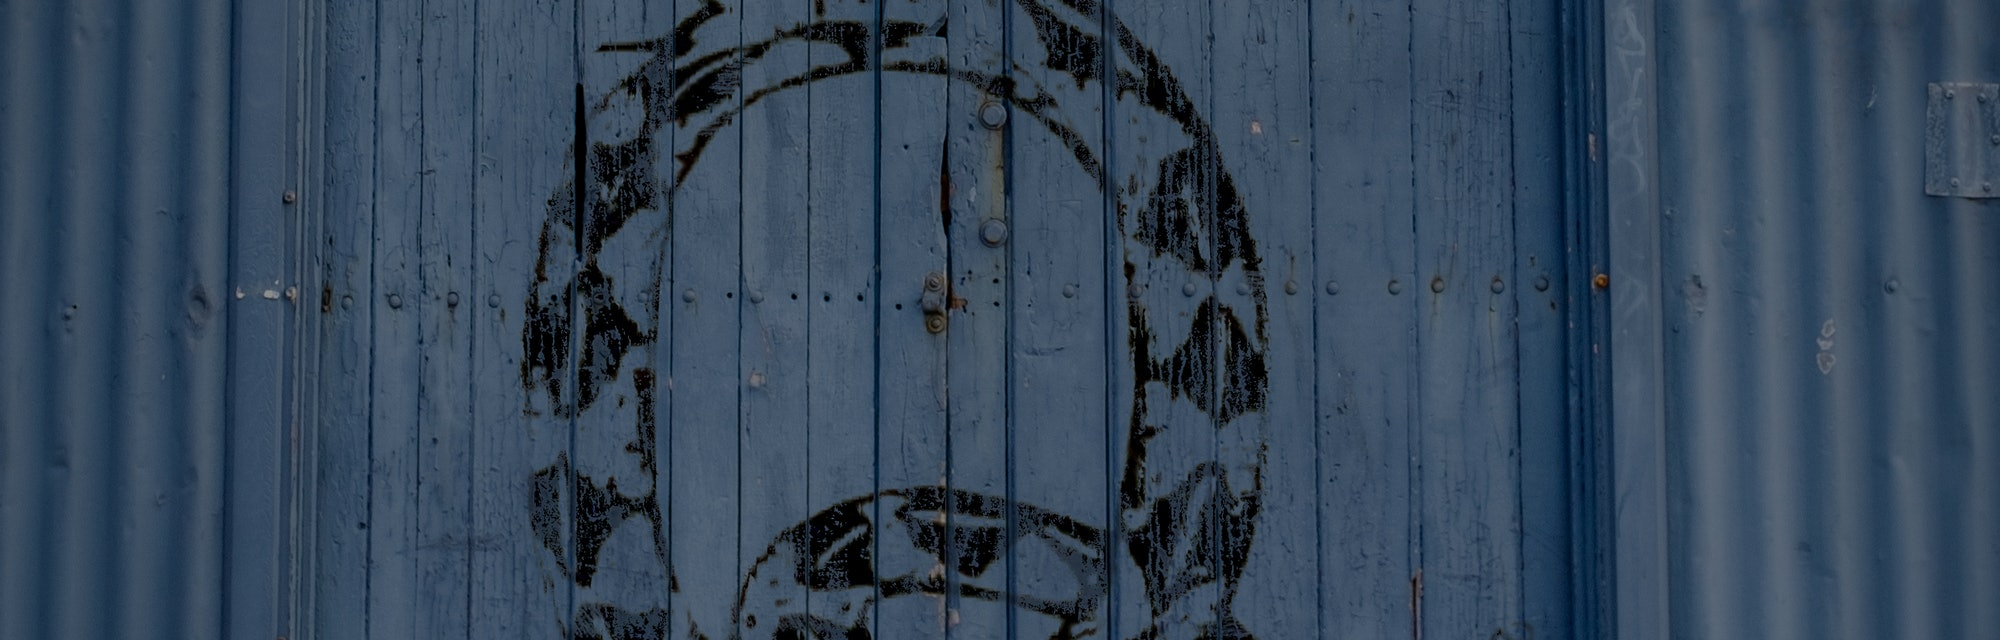 """Snake graffiti on old warehouse door which shows the conspiracy theory secret society QAnon's signature """"Q."""""""